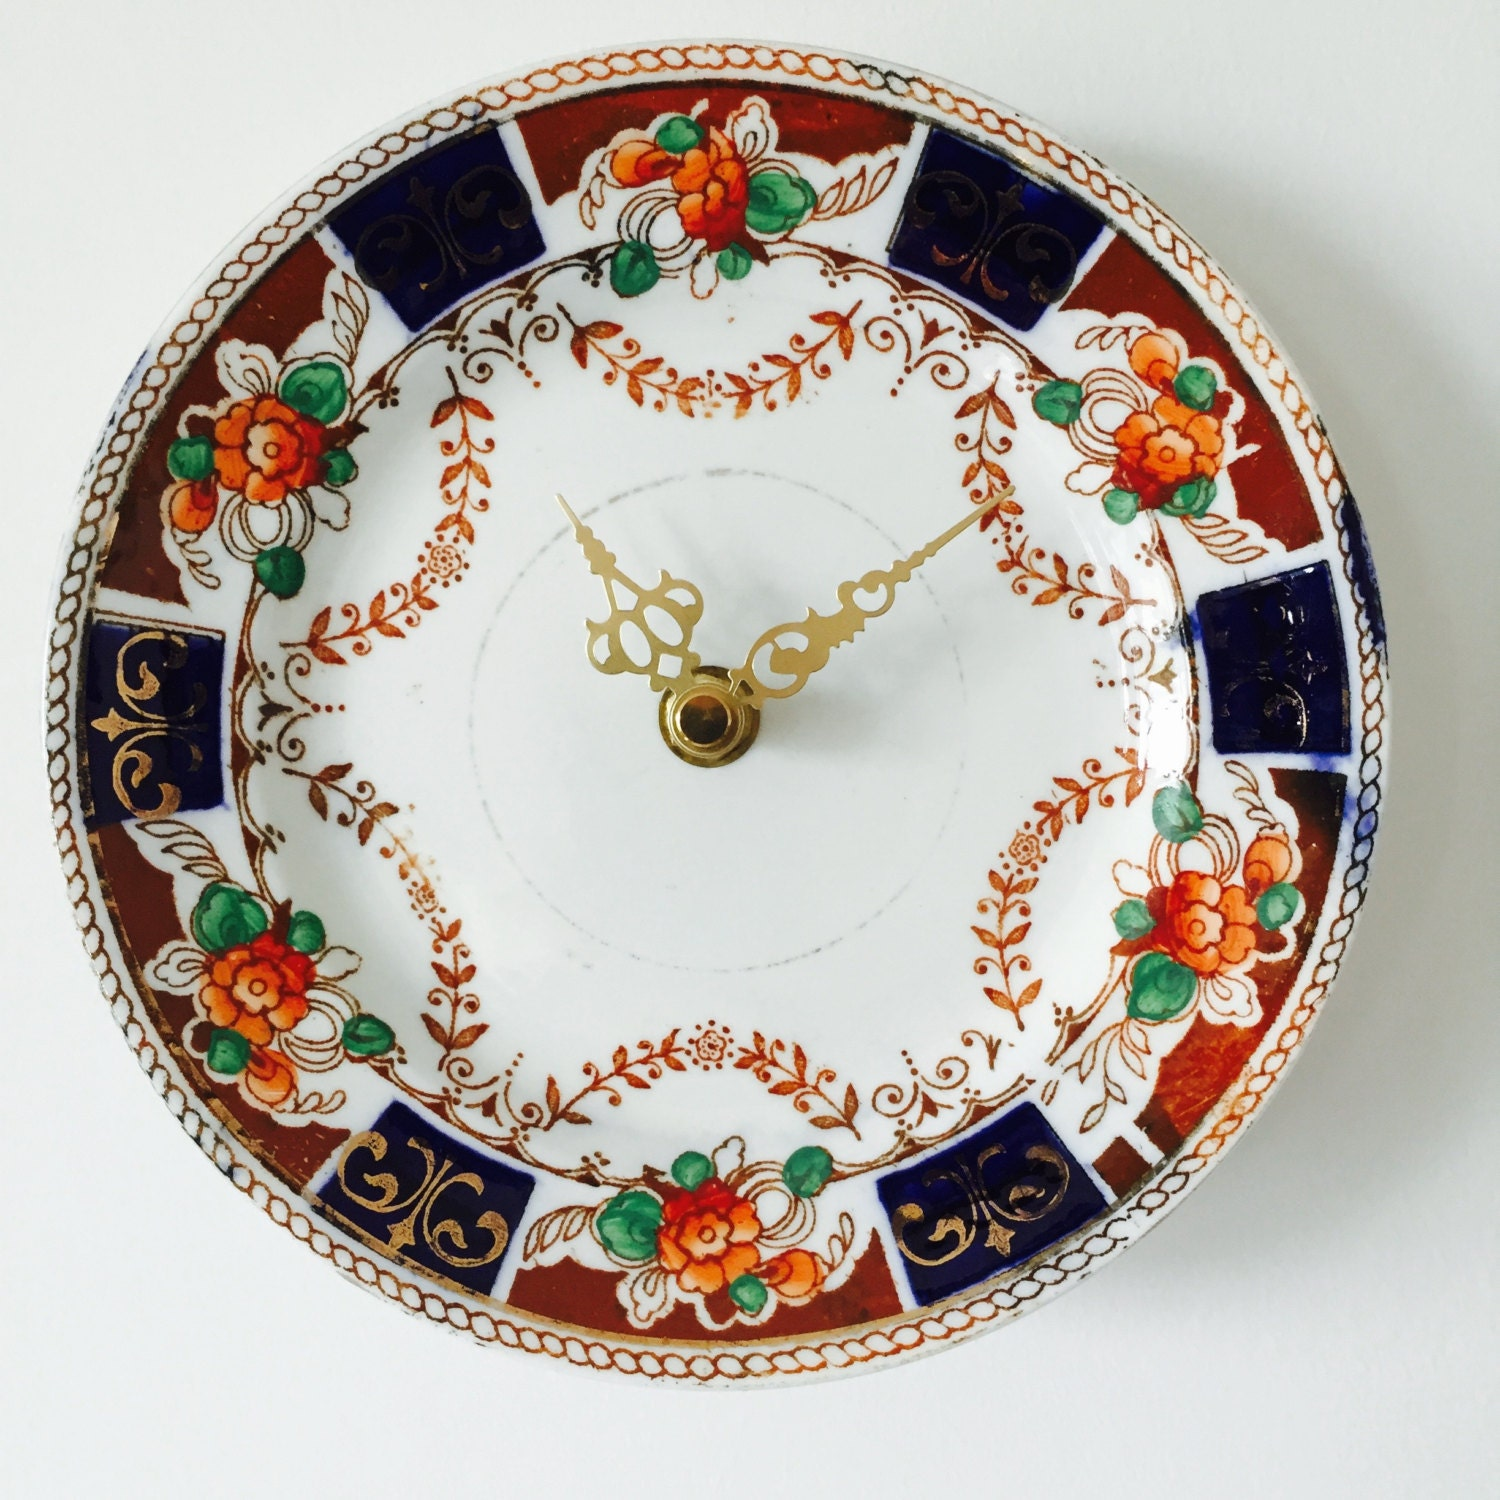 Image of Brown Orange flowers Navy Blue Gold Royal Albion Tea Party China Plate Wall Clock Wedding Anniversary Vintage Home Gift for Couple